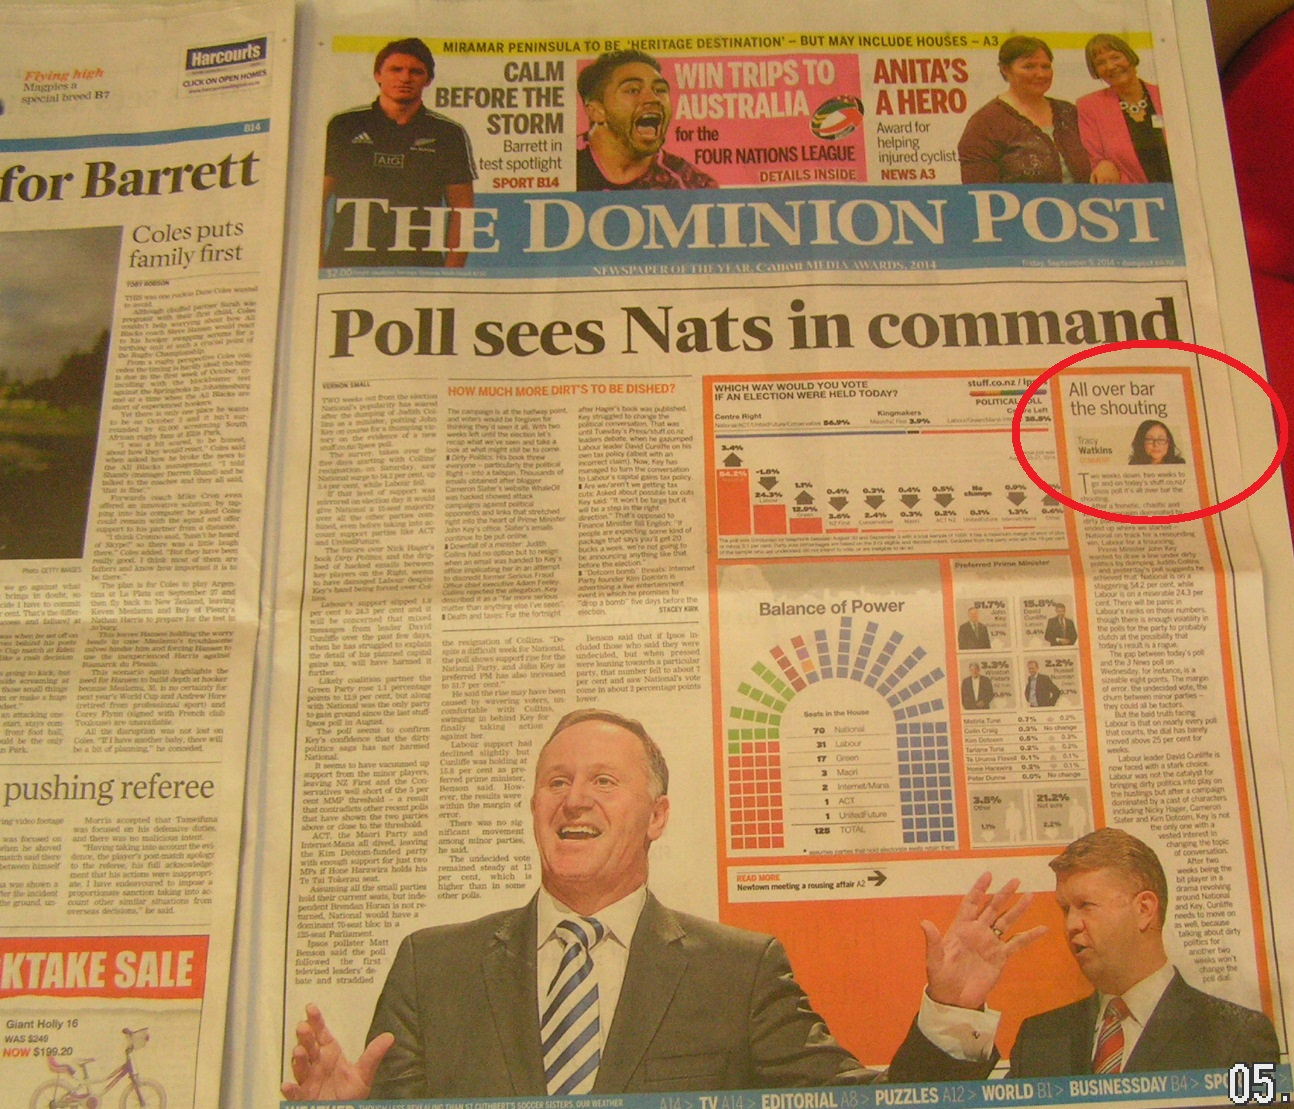 dominion-post-5-september-2014-fairfax-ipsos-poll-2014-election-tracey-watkins